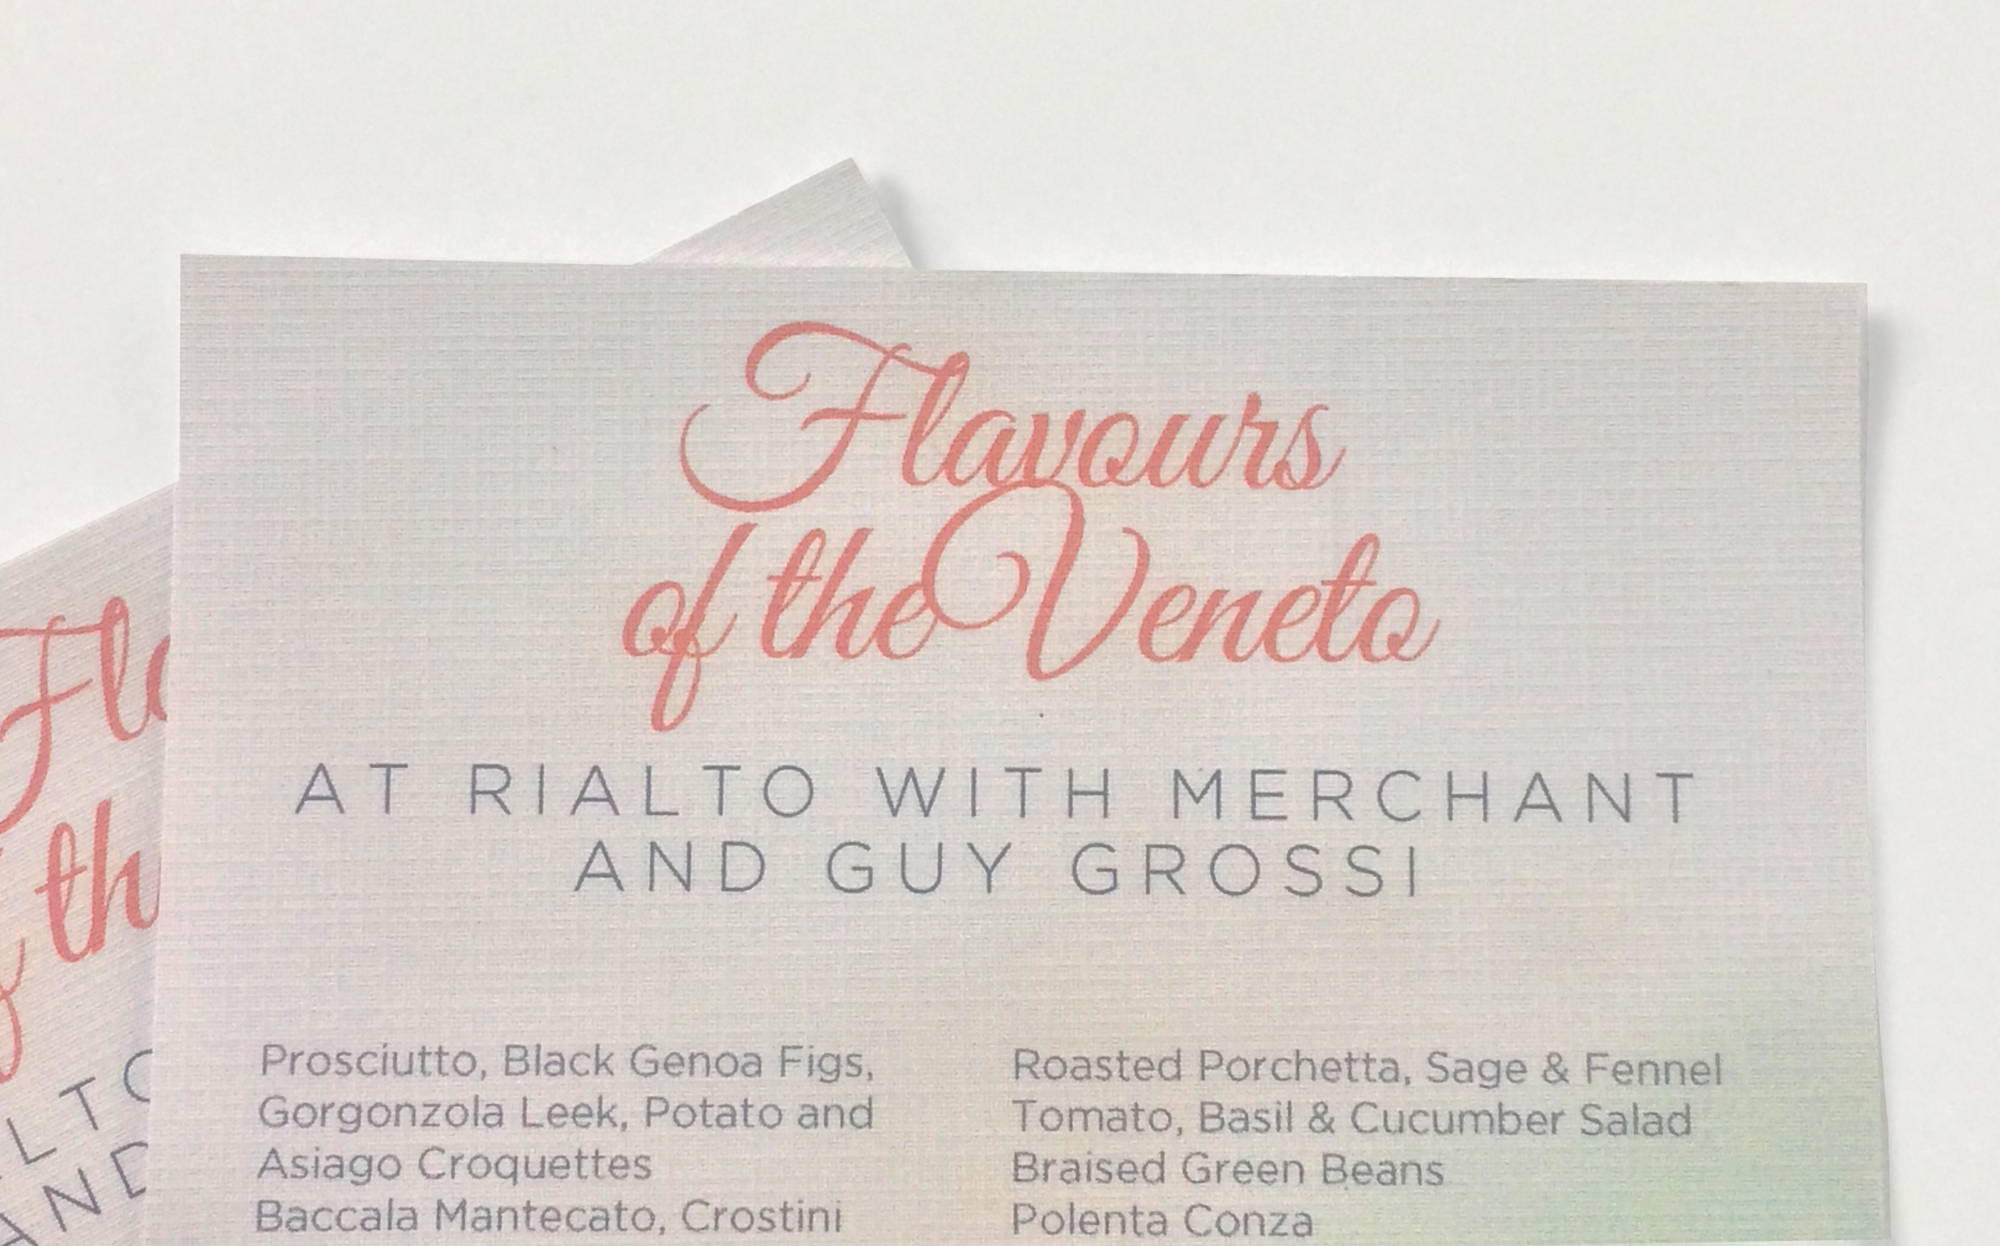 Flavours-of-the-Rialto-texture